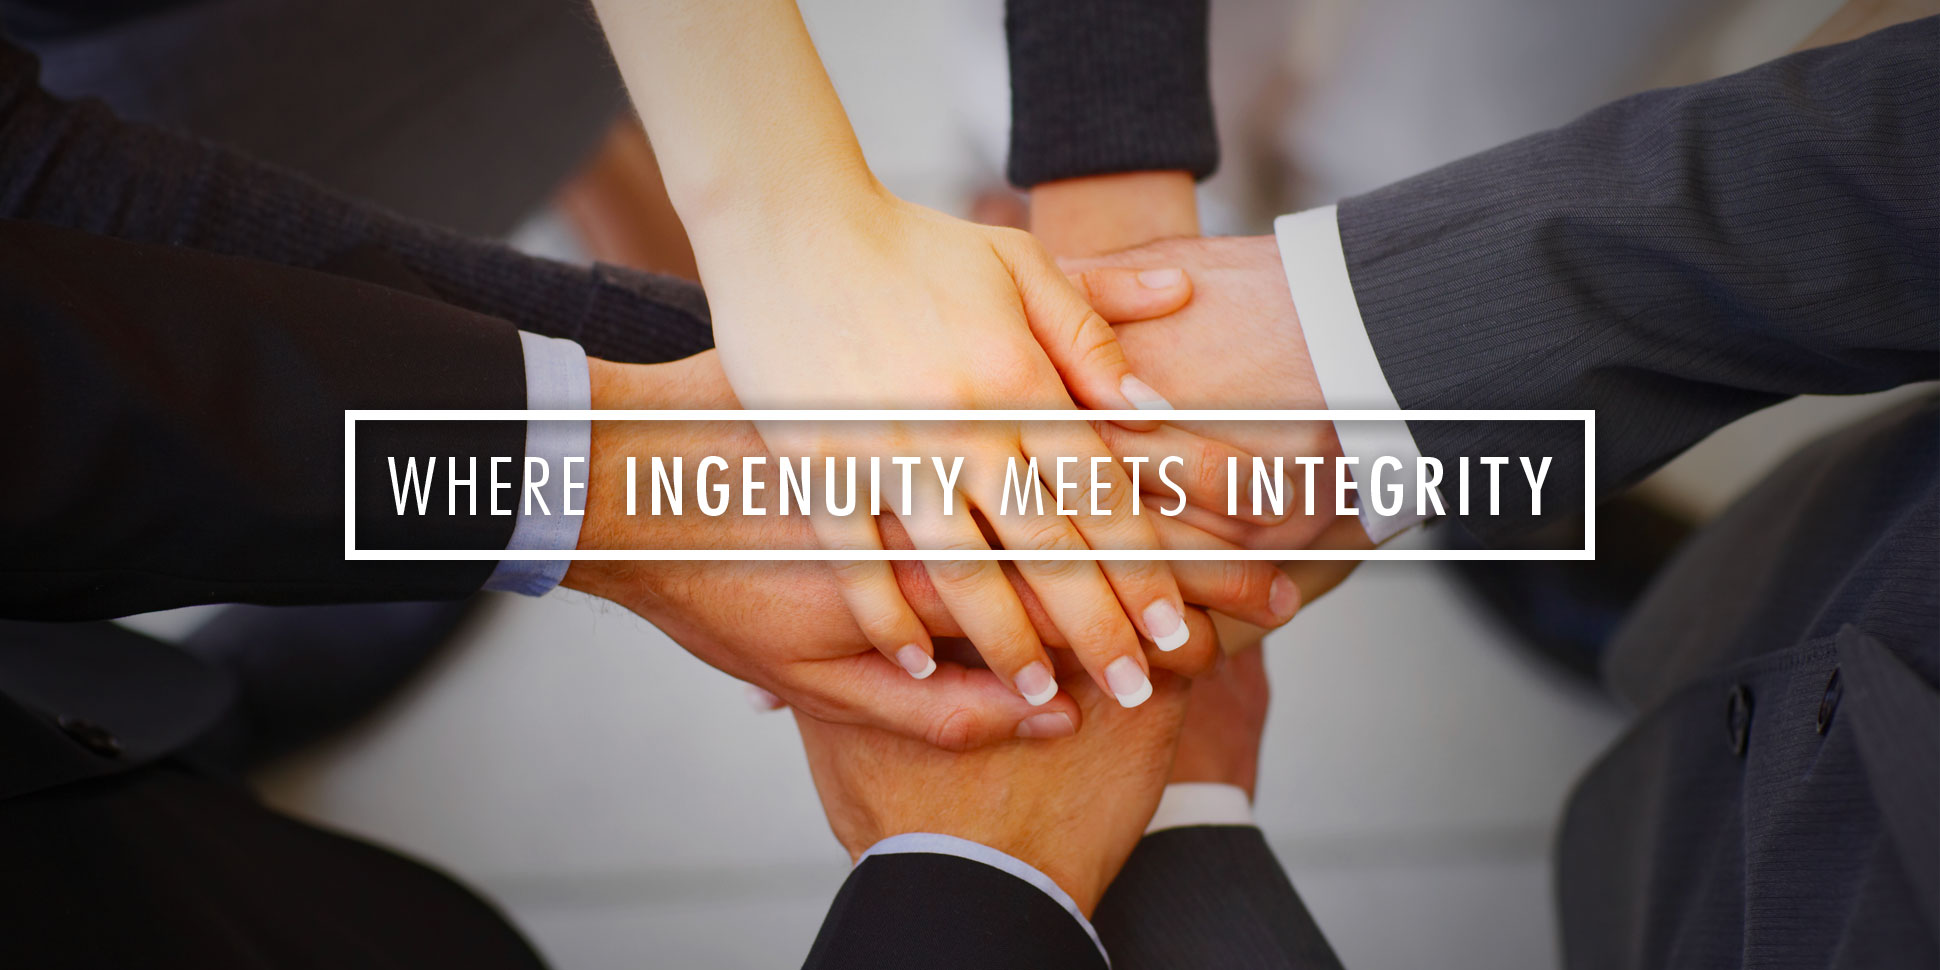 Where Ingenuity Meets Integrity